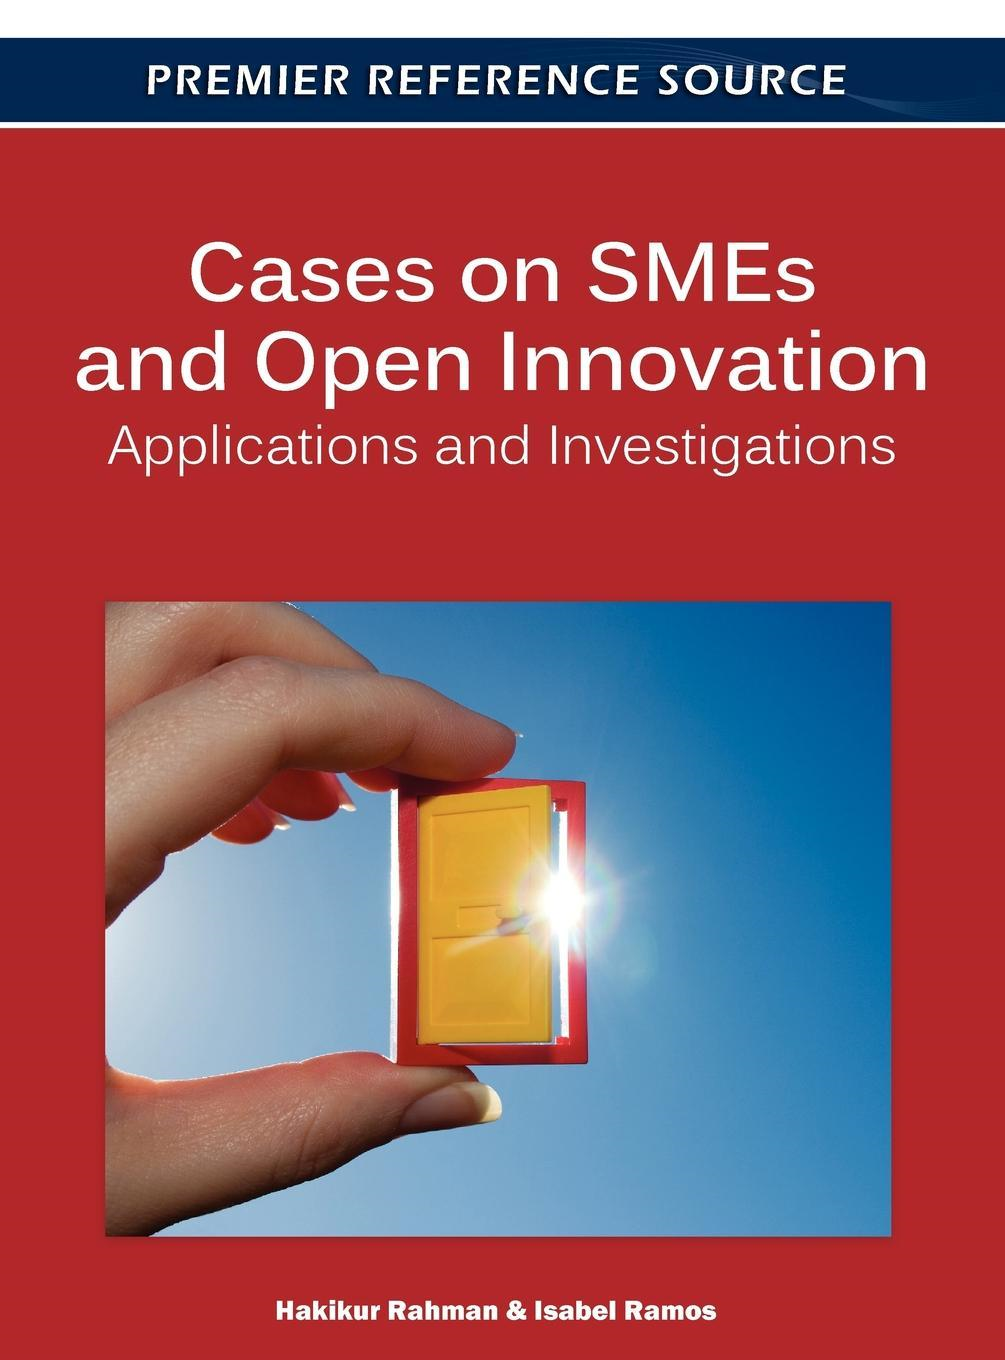 Cases on SMEs and Open Innovation: Applications and Investigations